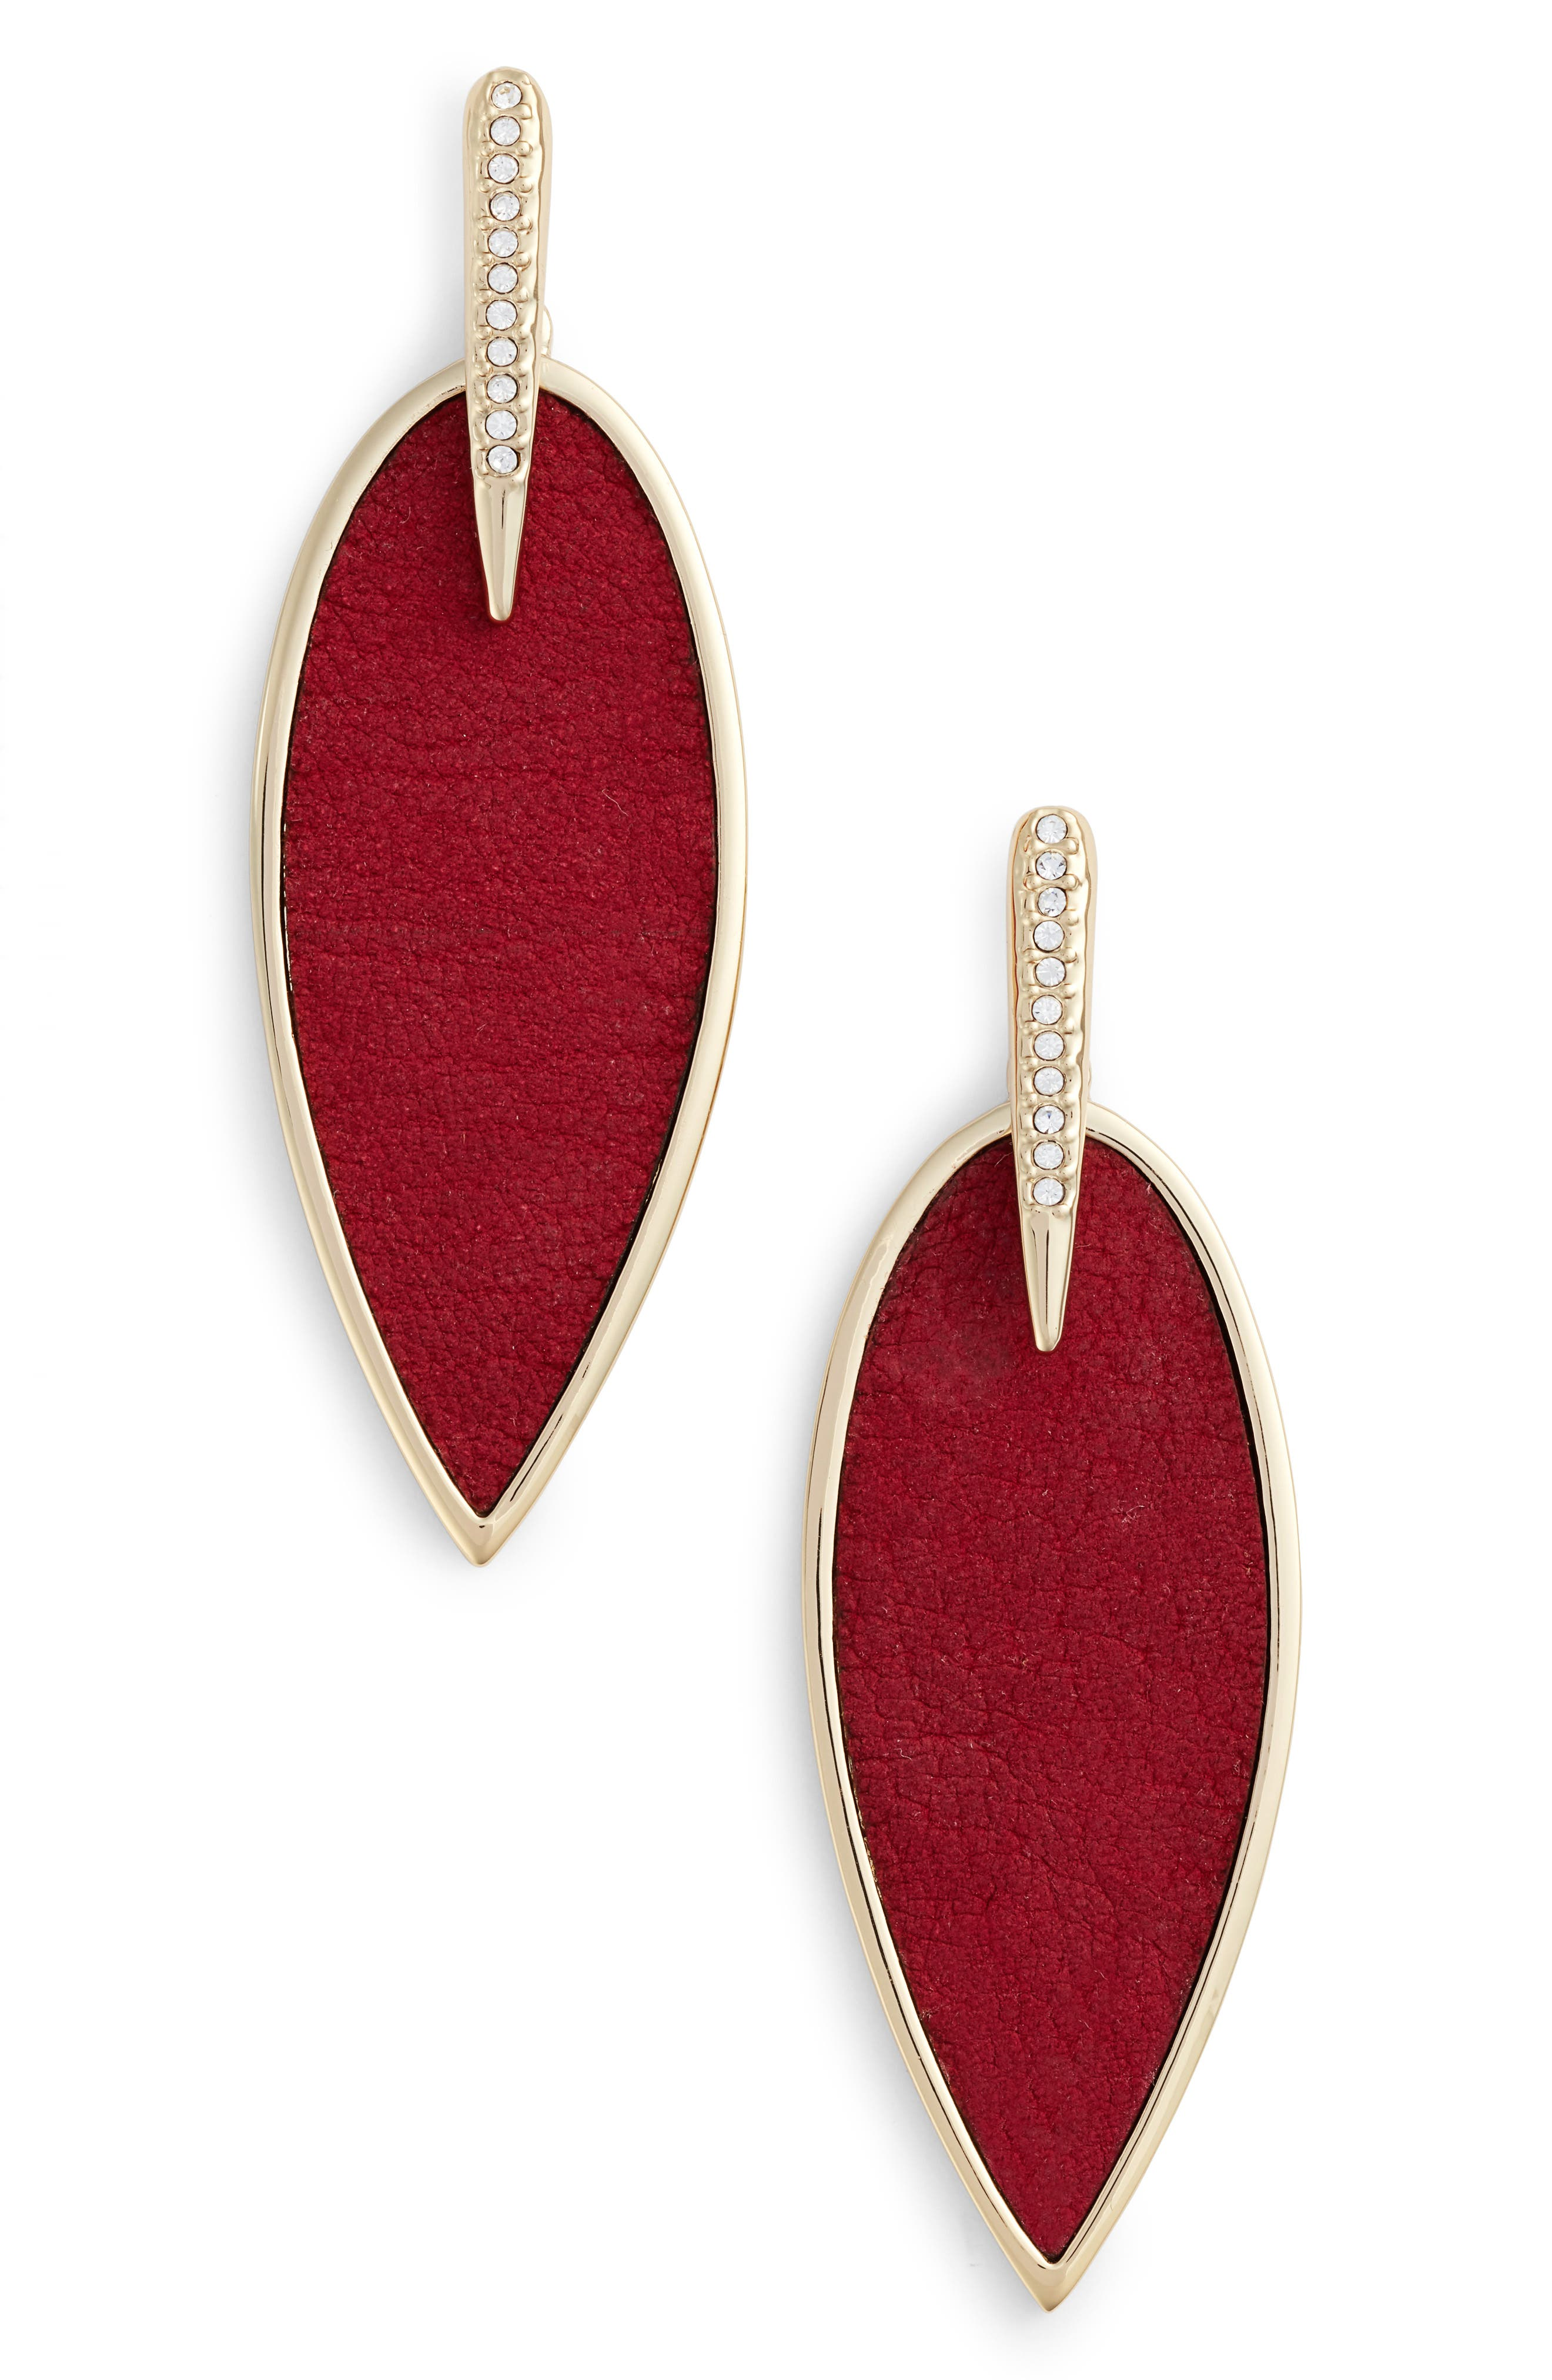 Inlaid Leather Statement Earrings,                             Main thumbnail 3, color,